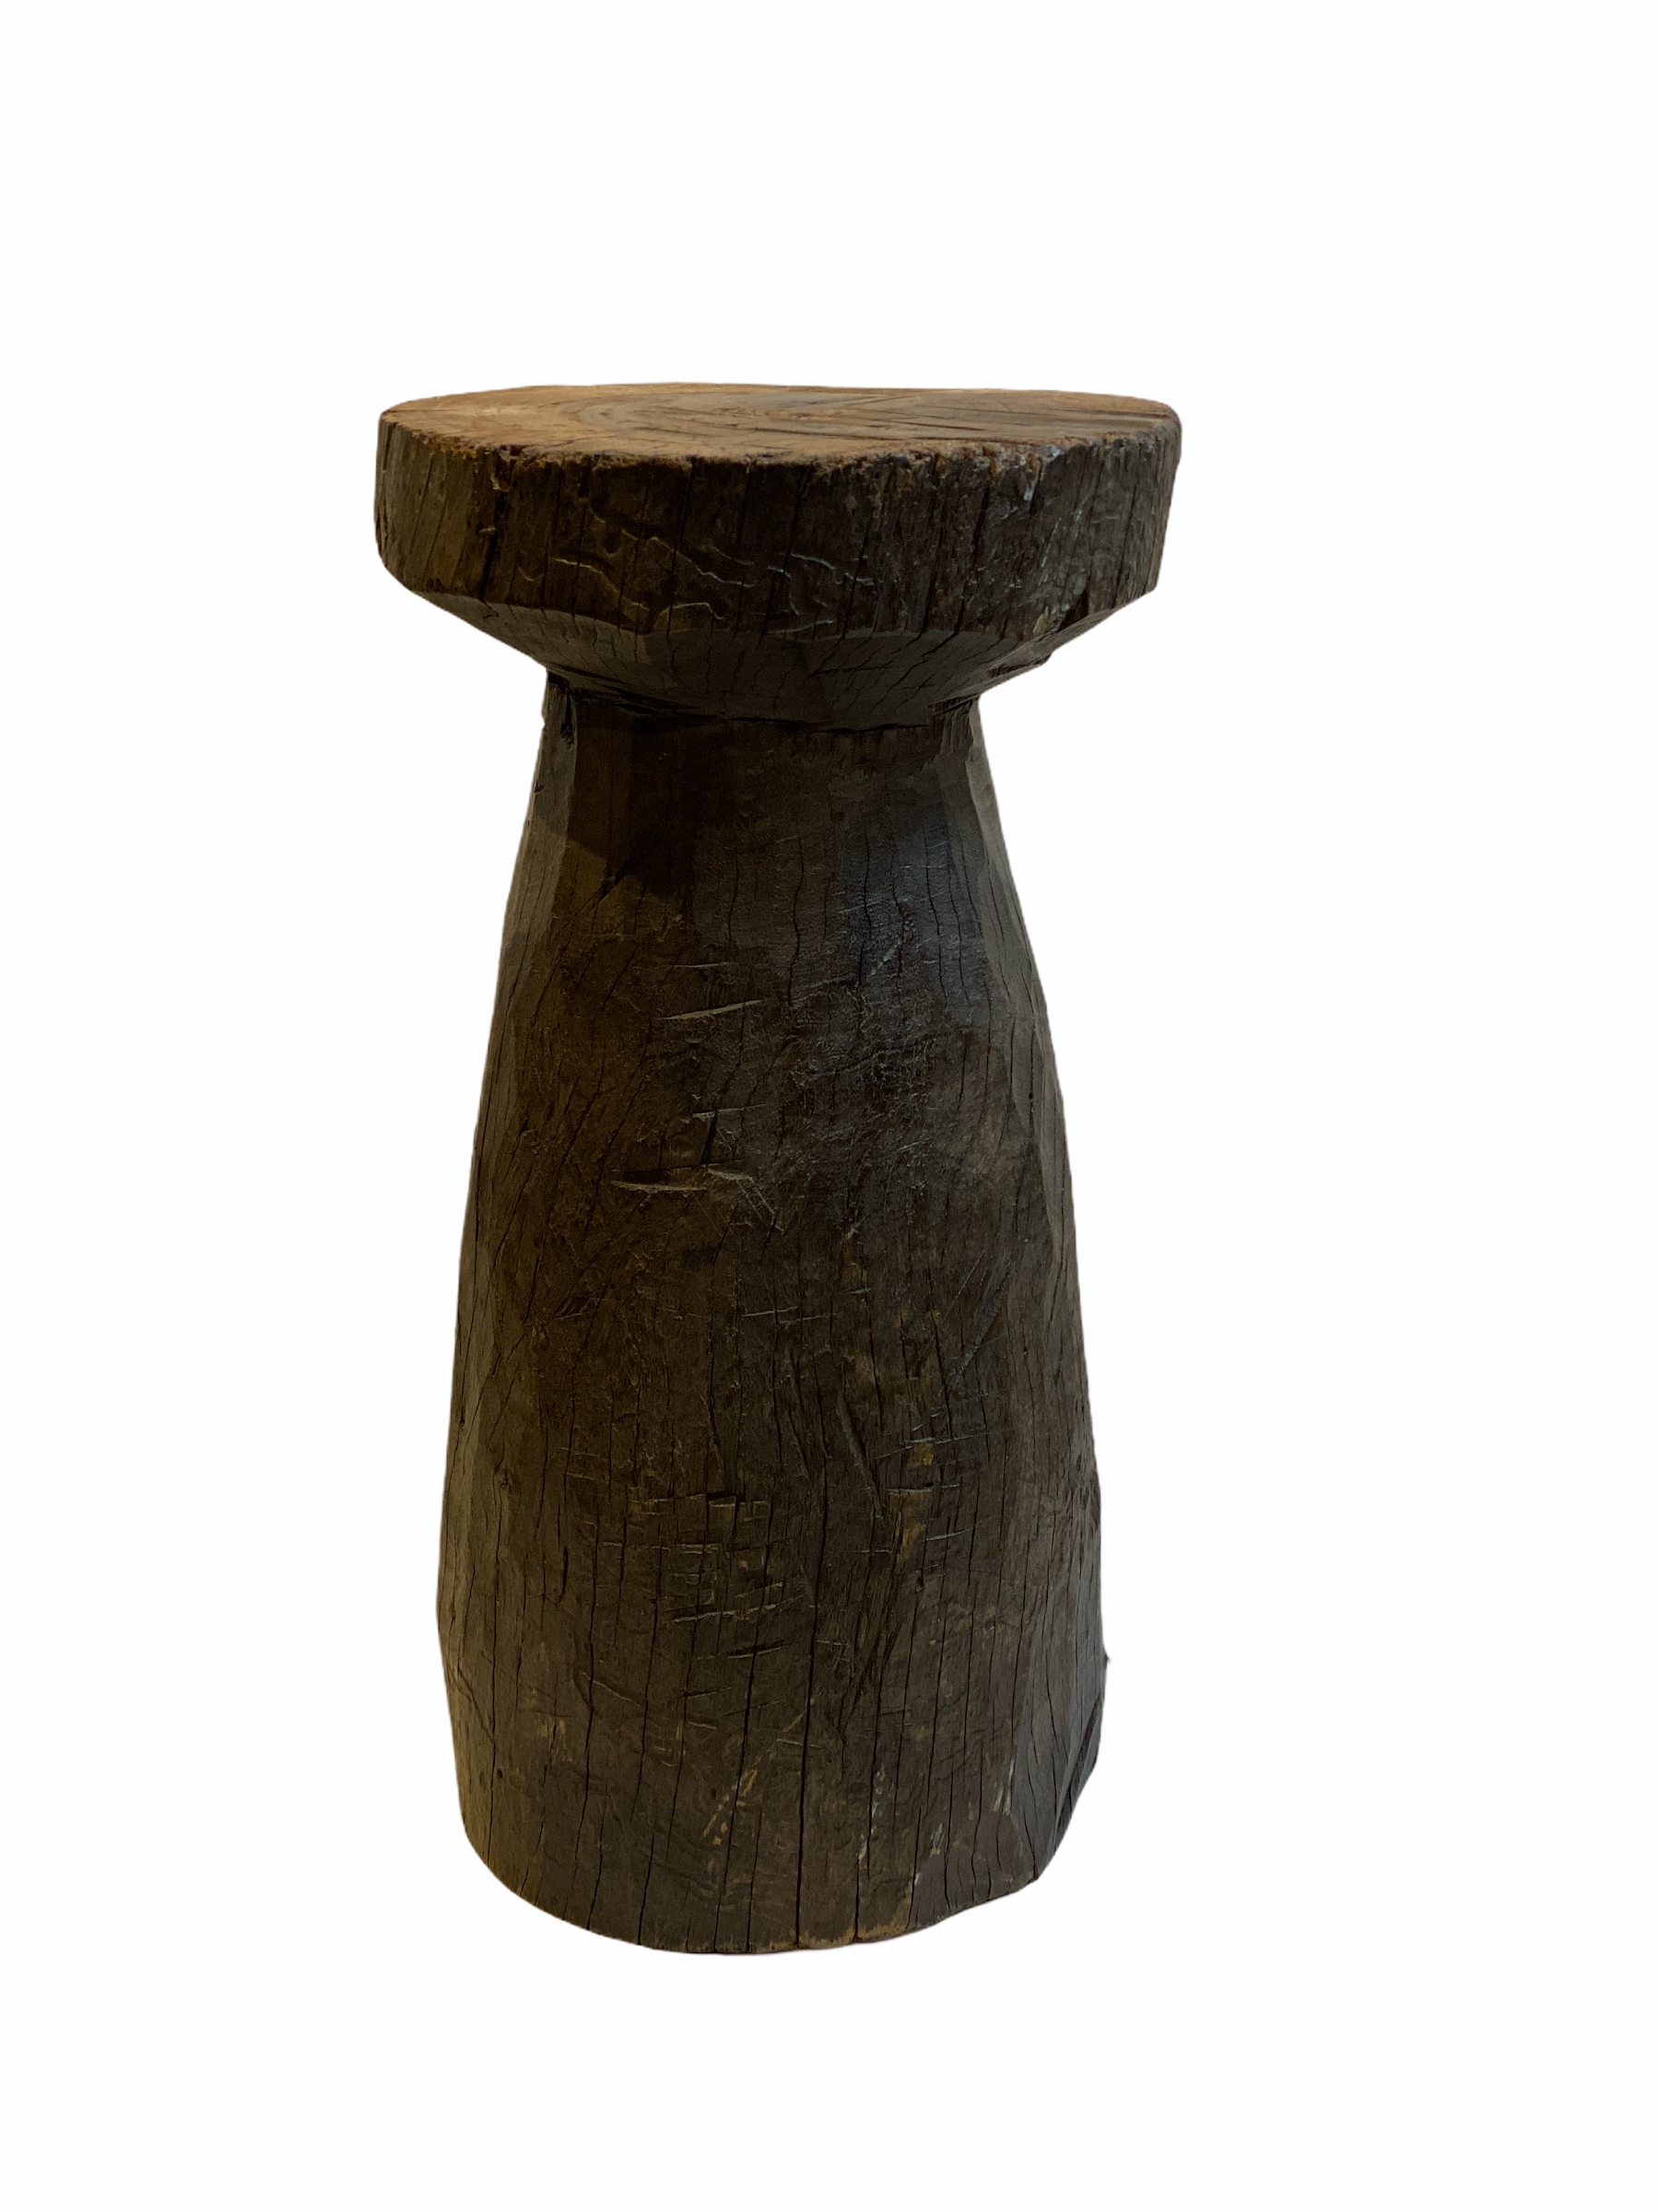 Lozi Grain Stomper Stool/Side Table (1) - Zambia